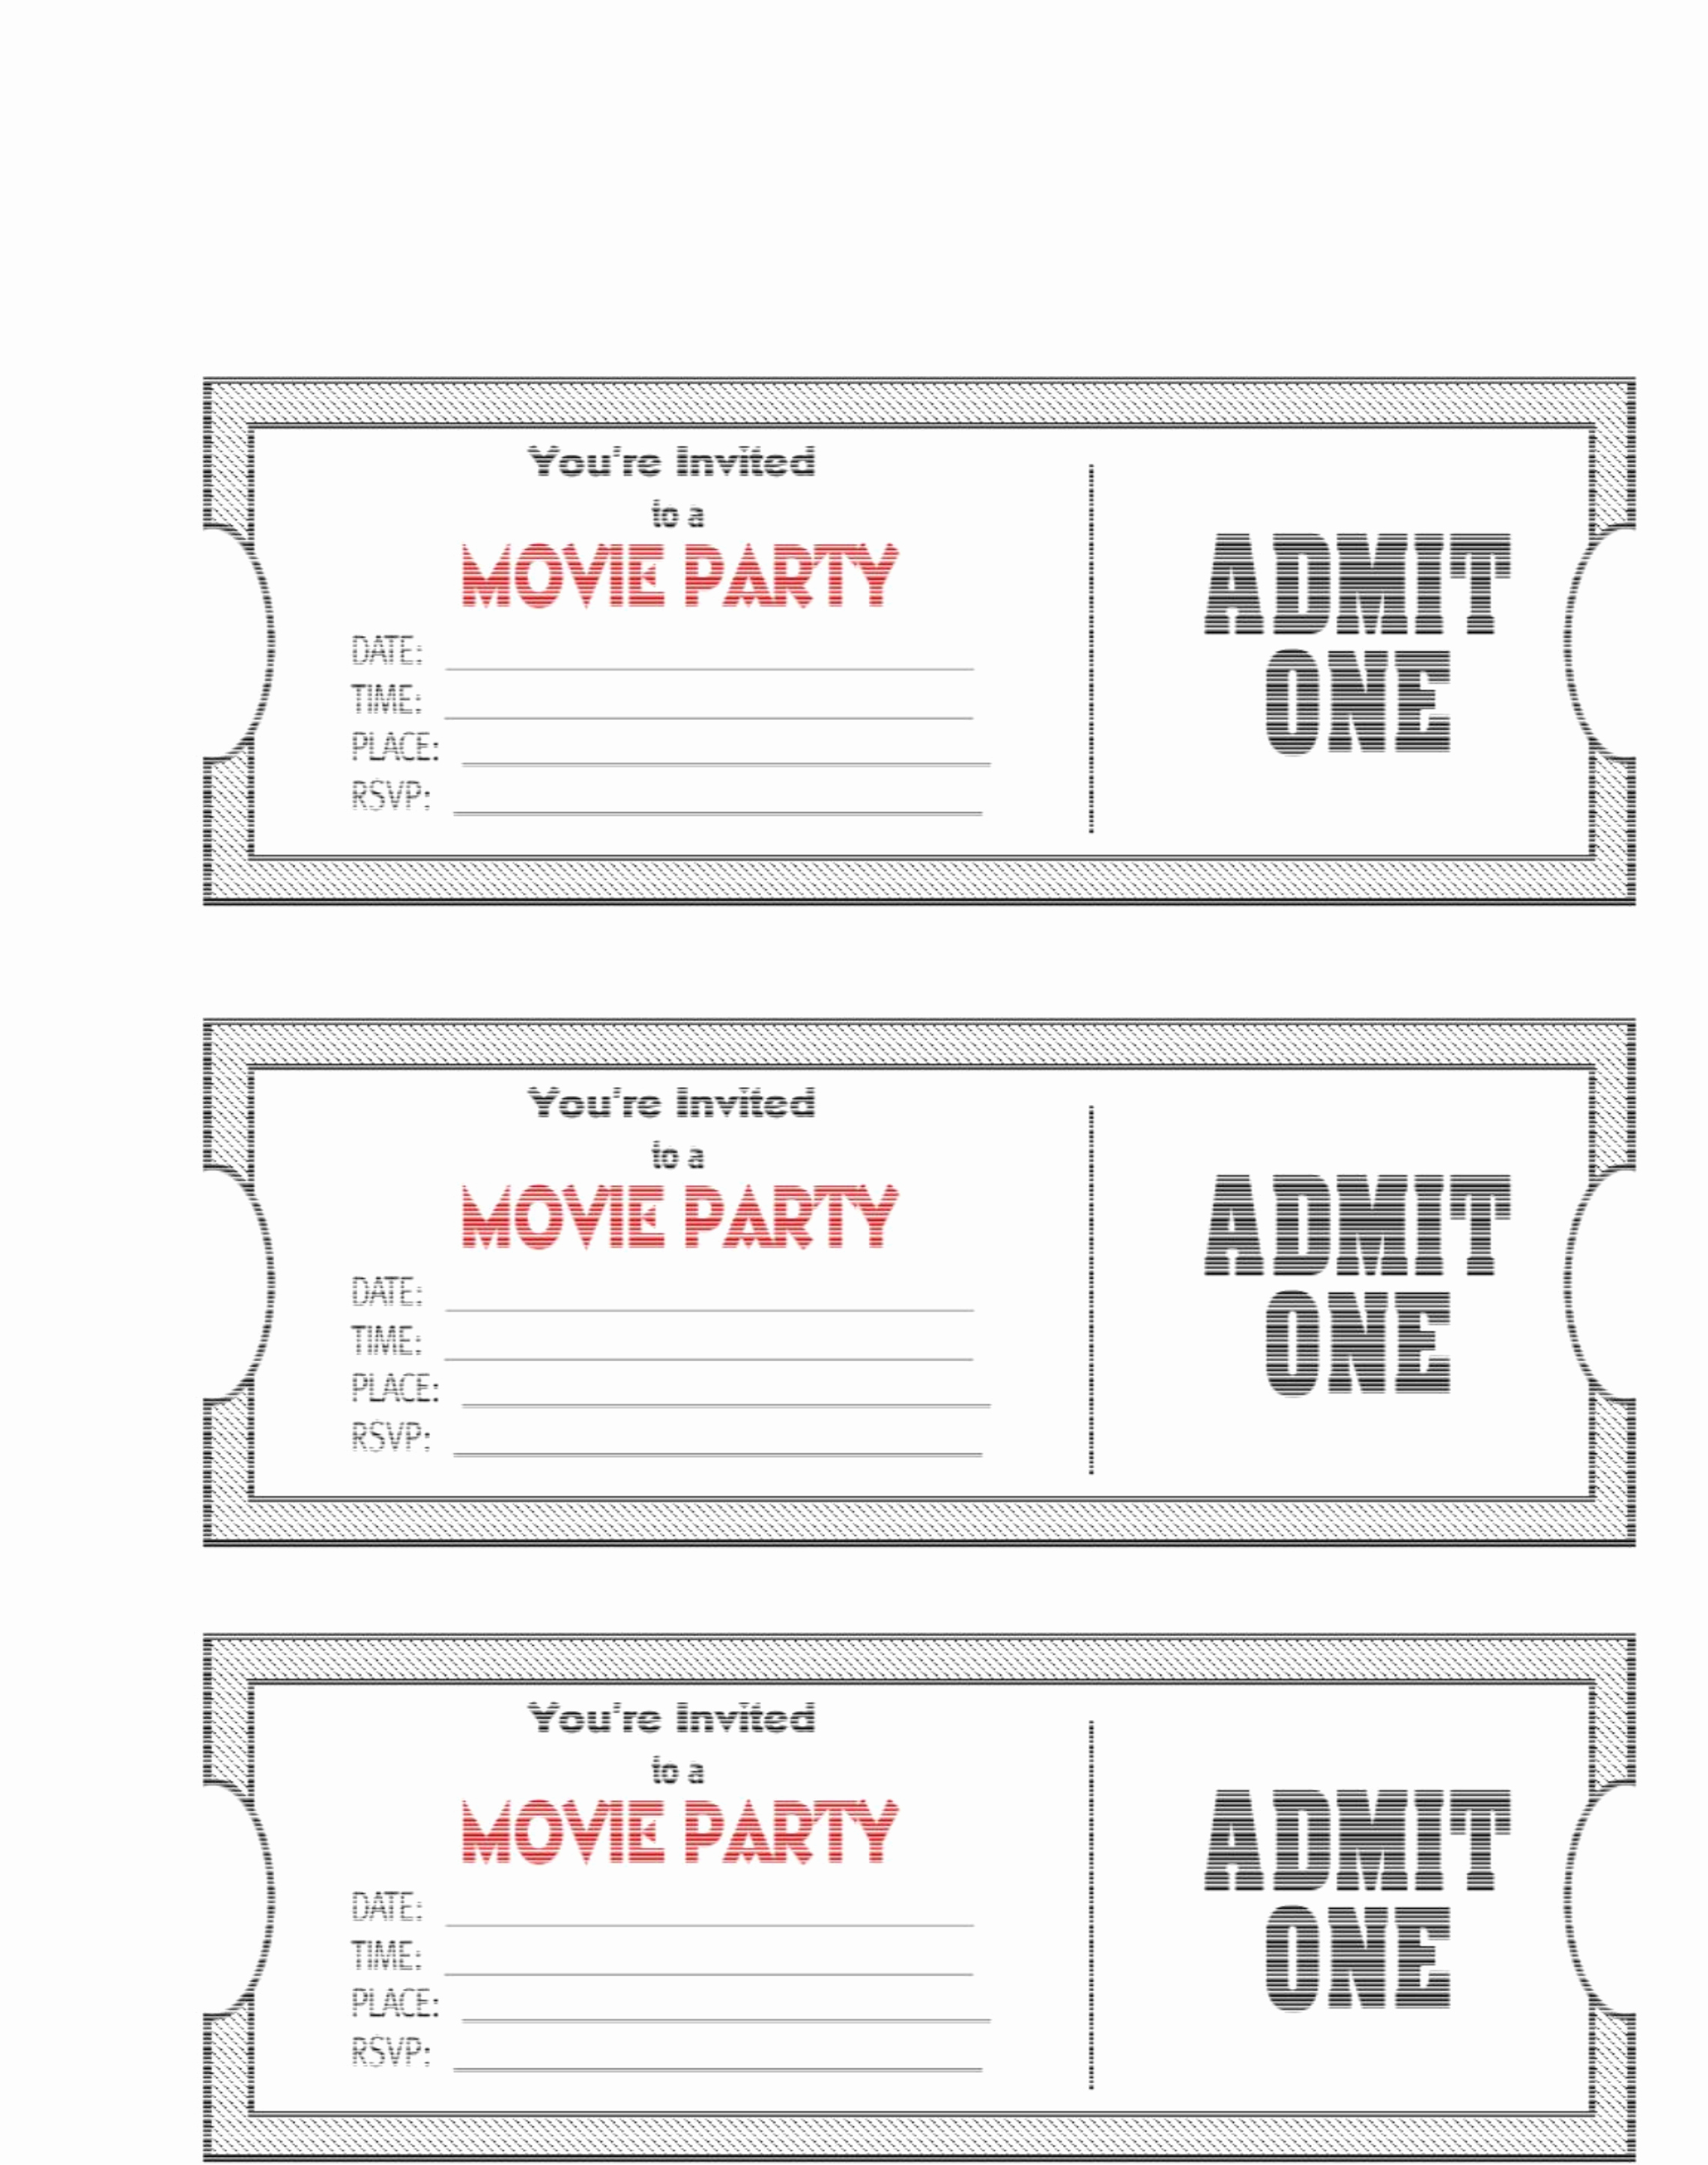 Ticket Invitation Templates Free Lovely Movie Ticket Template